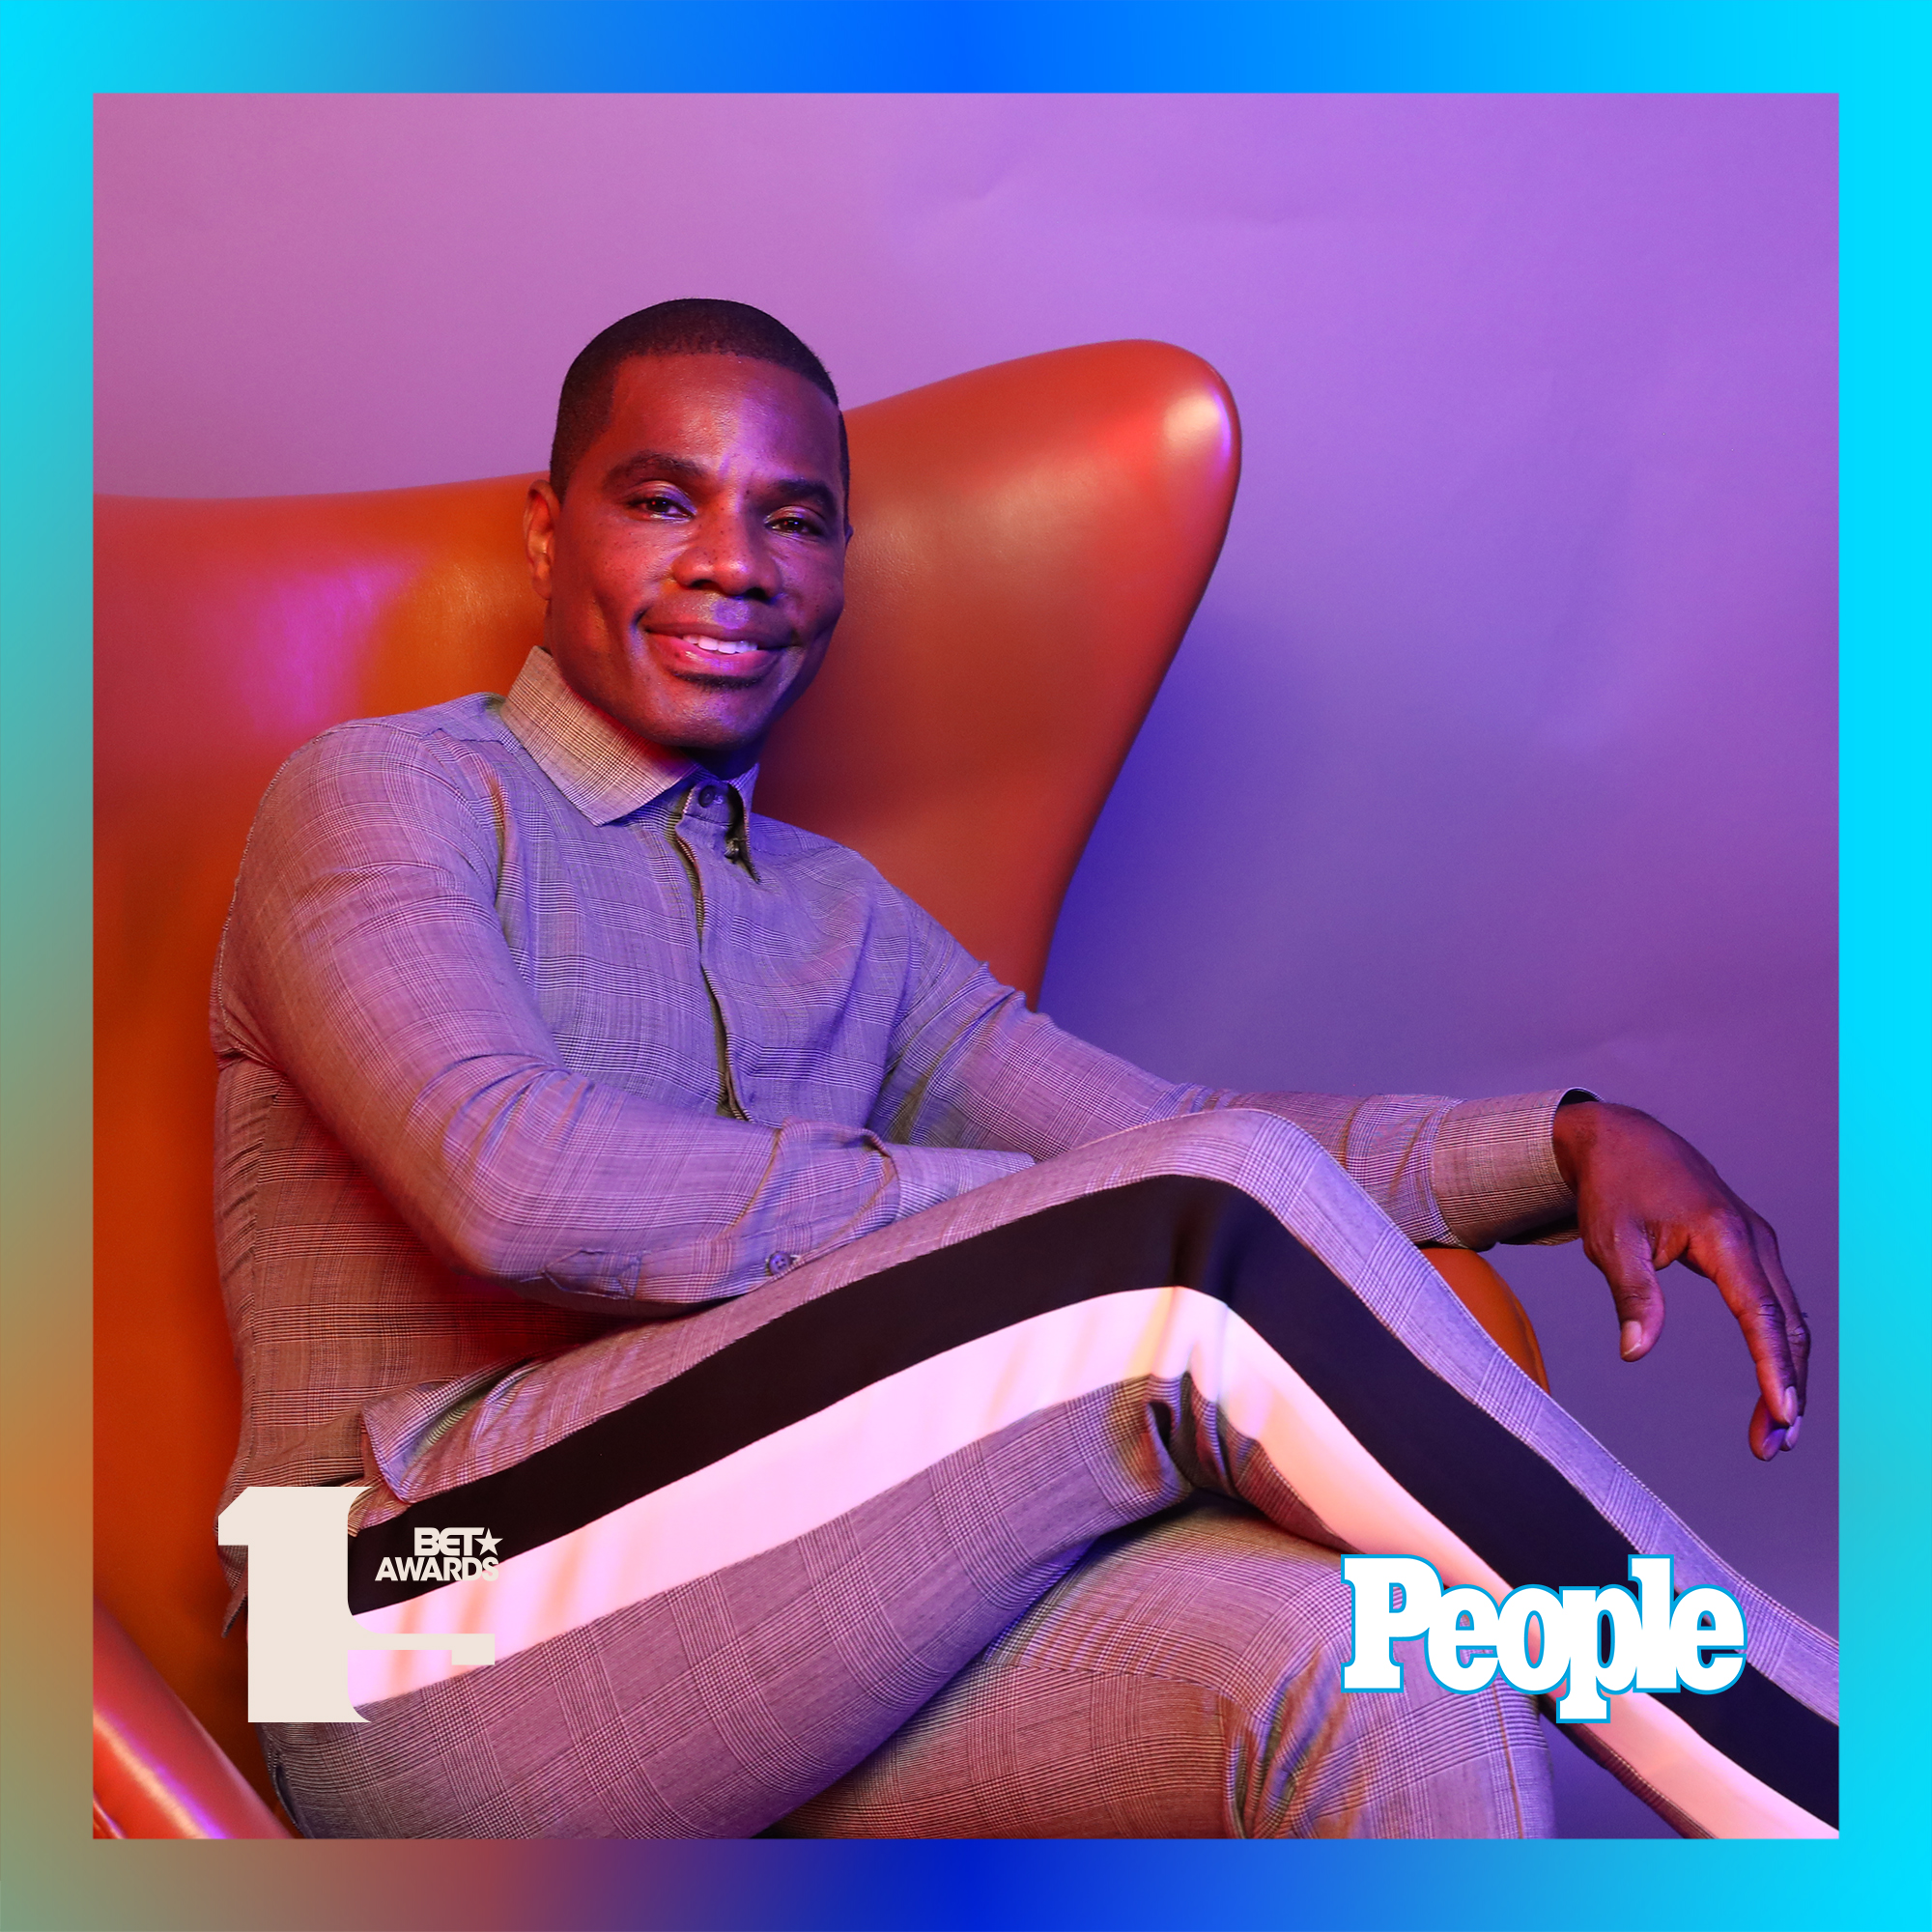 Kirk Franklin photographed at the 2019 BET Awards by Bennett Raglin exclusively for PEOPLE Credit: Bennett Raglin